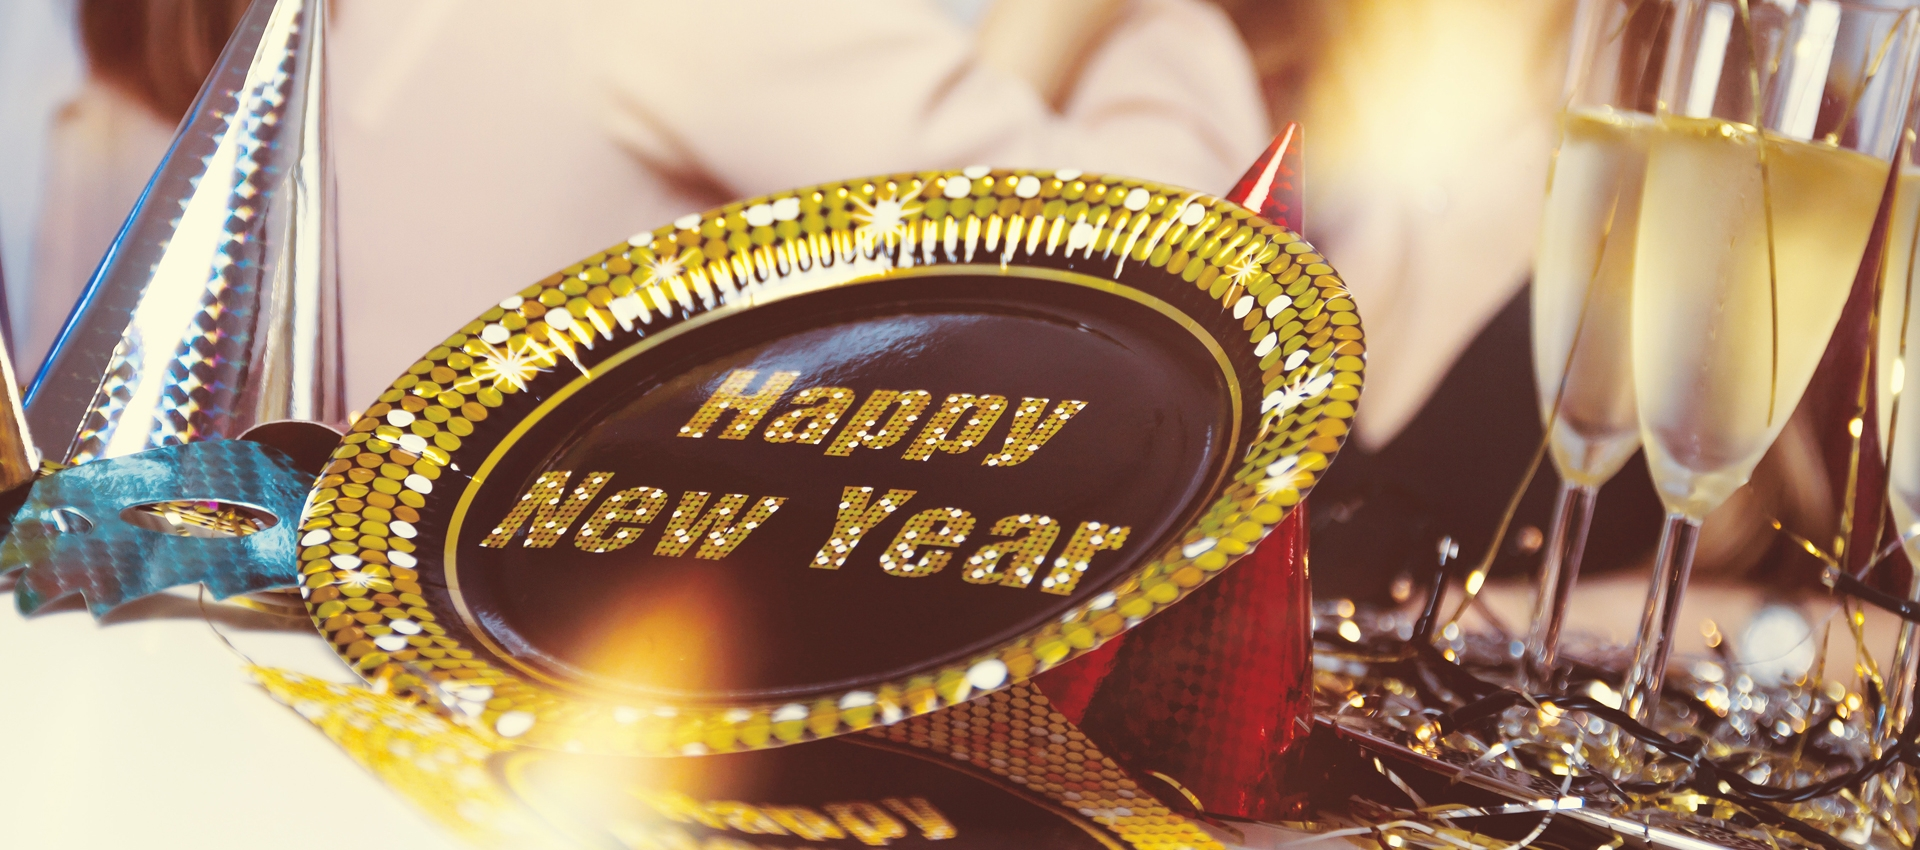 Happy New Year from All of Us at HSA Golden!